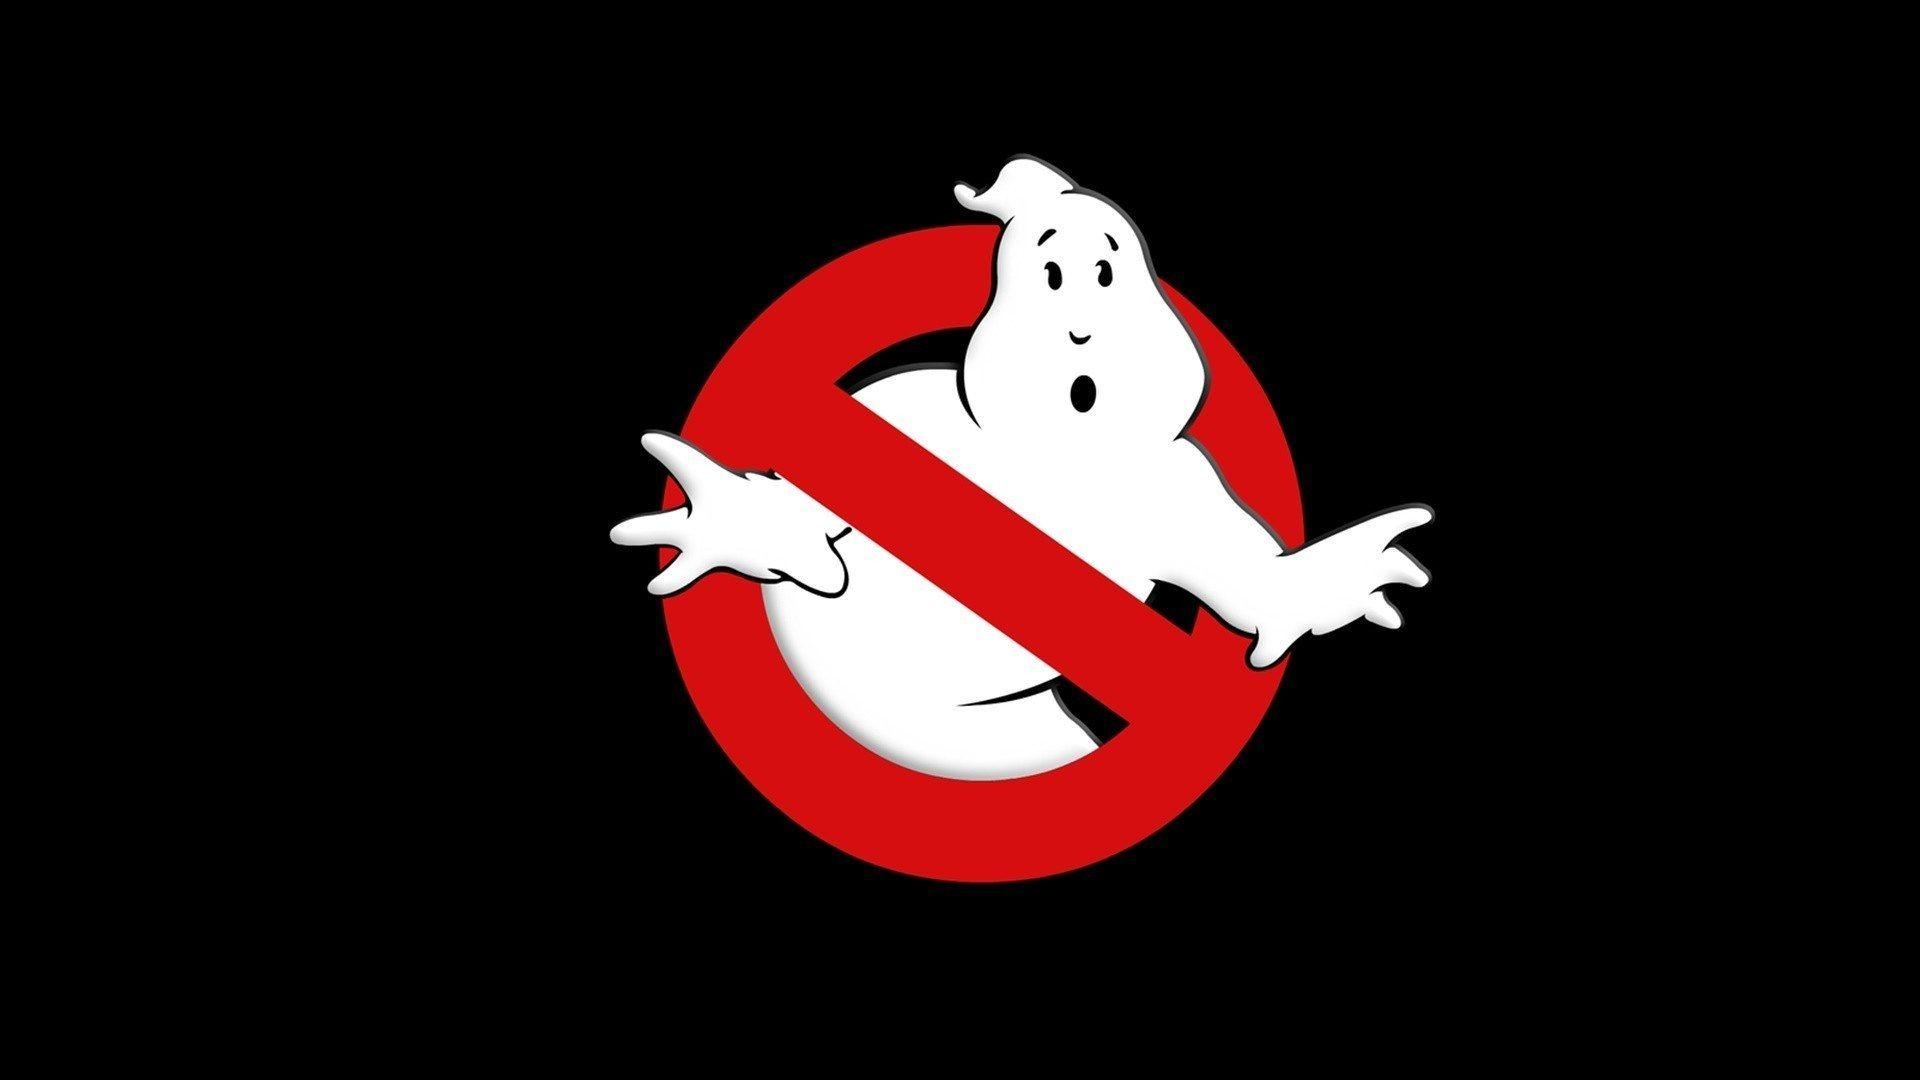 1920x1080 Ghostbusters 3 High Def Wallpaper For Mac Ghostbusters Ghostbusters Movie Funny Wallpapers